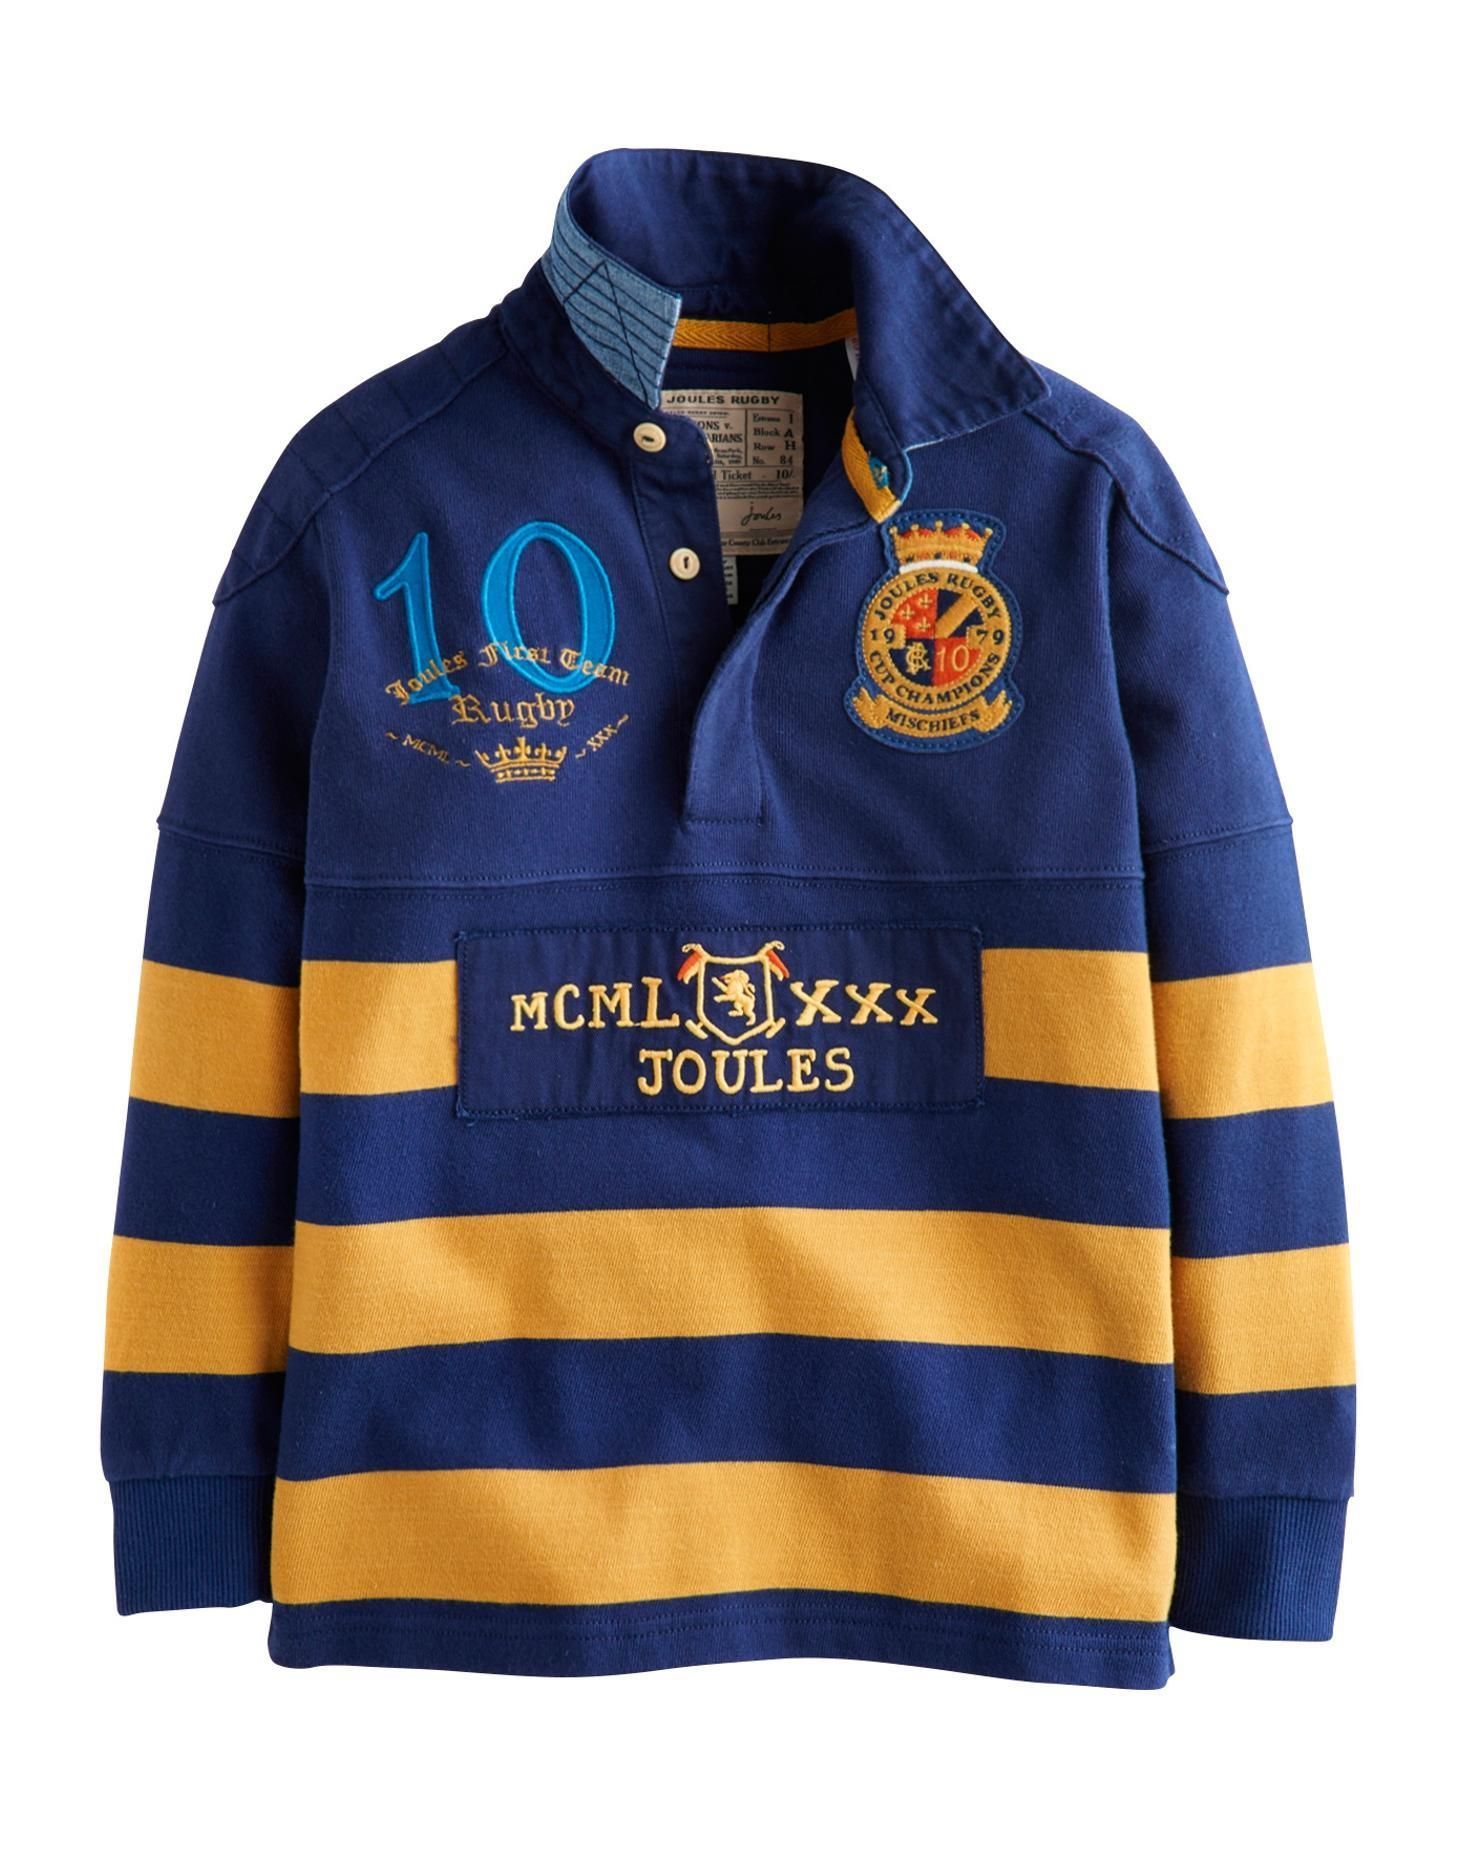 4099c235 Joules Boys Panelled Rugby Shirt, Blue Gem. This rugby shirt is as tough as  old boots, but looks so much better. There's no better kit for climbing  trees, ...